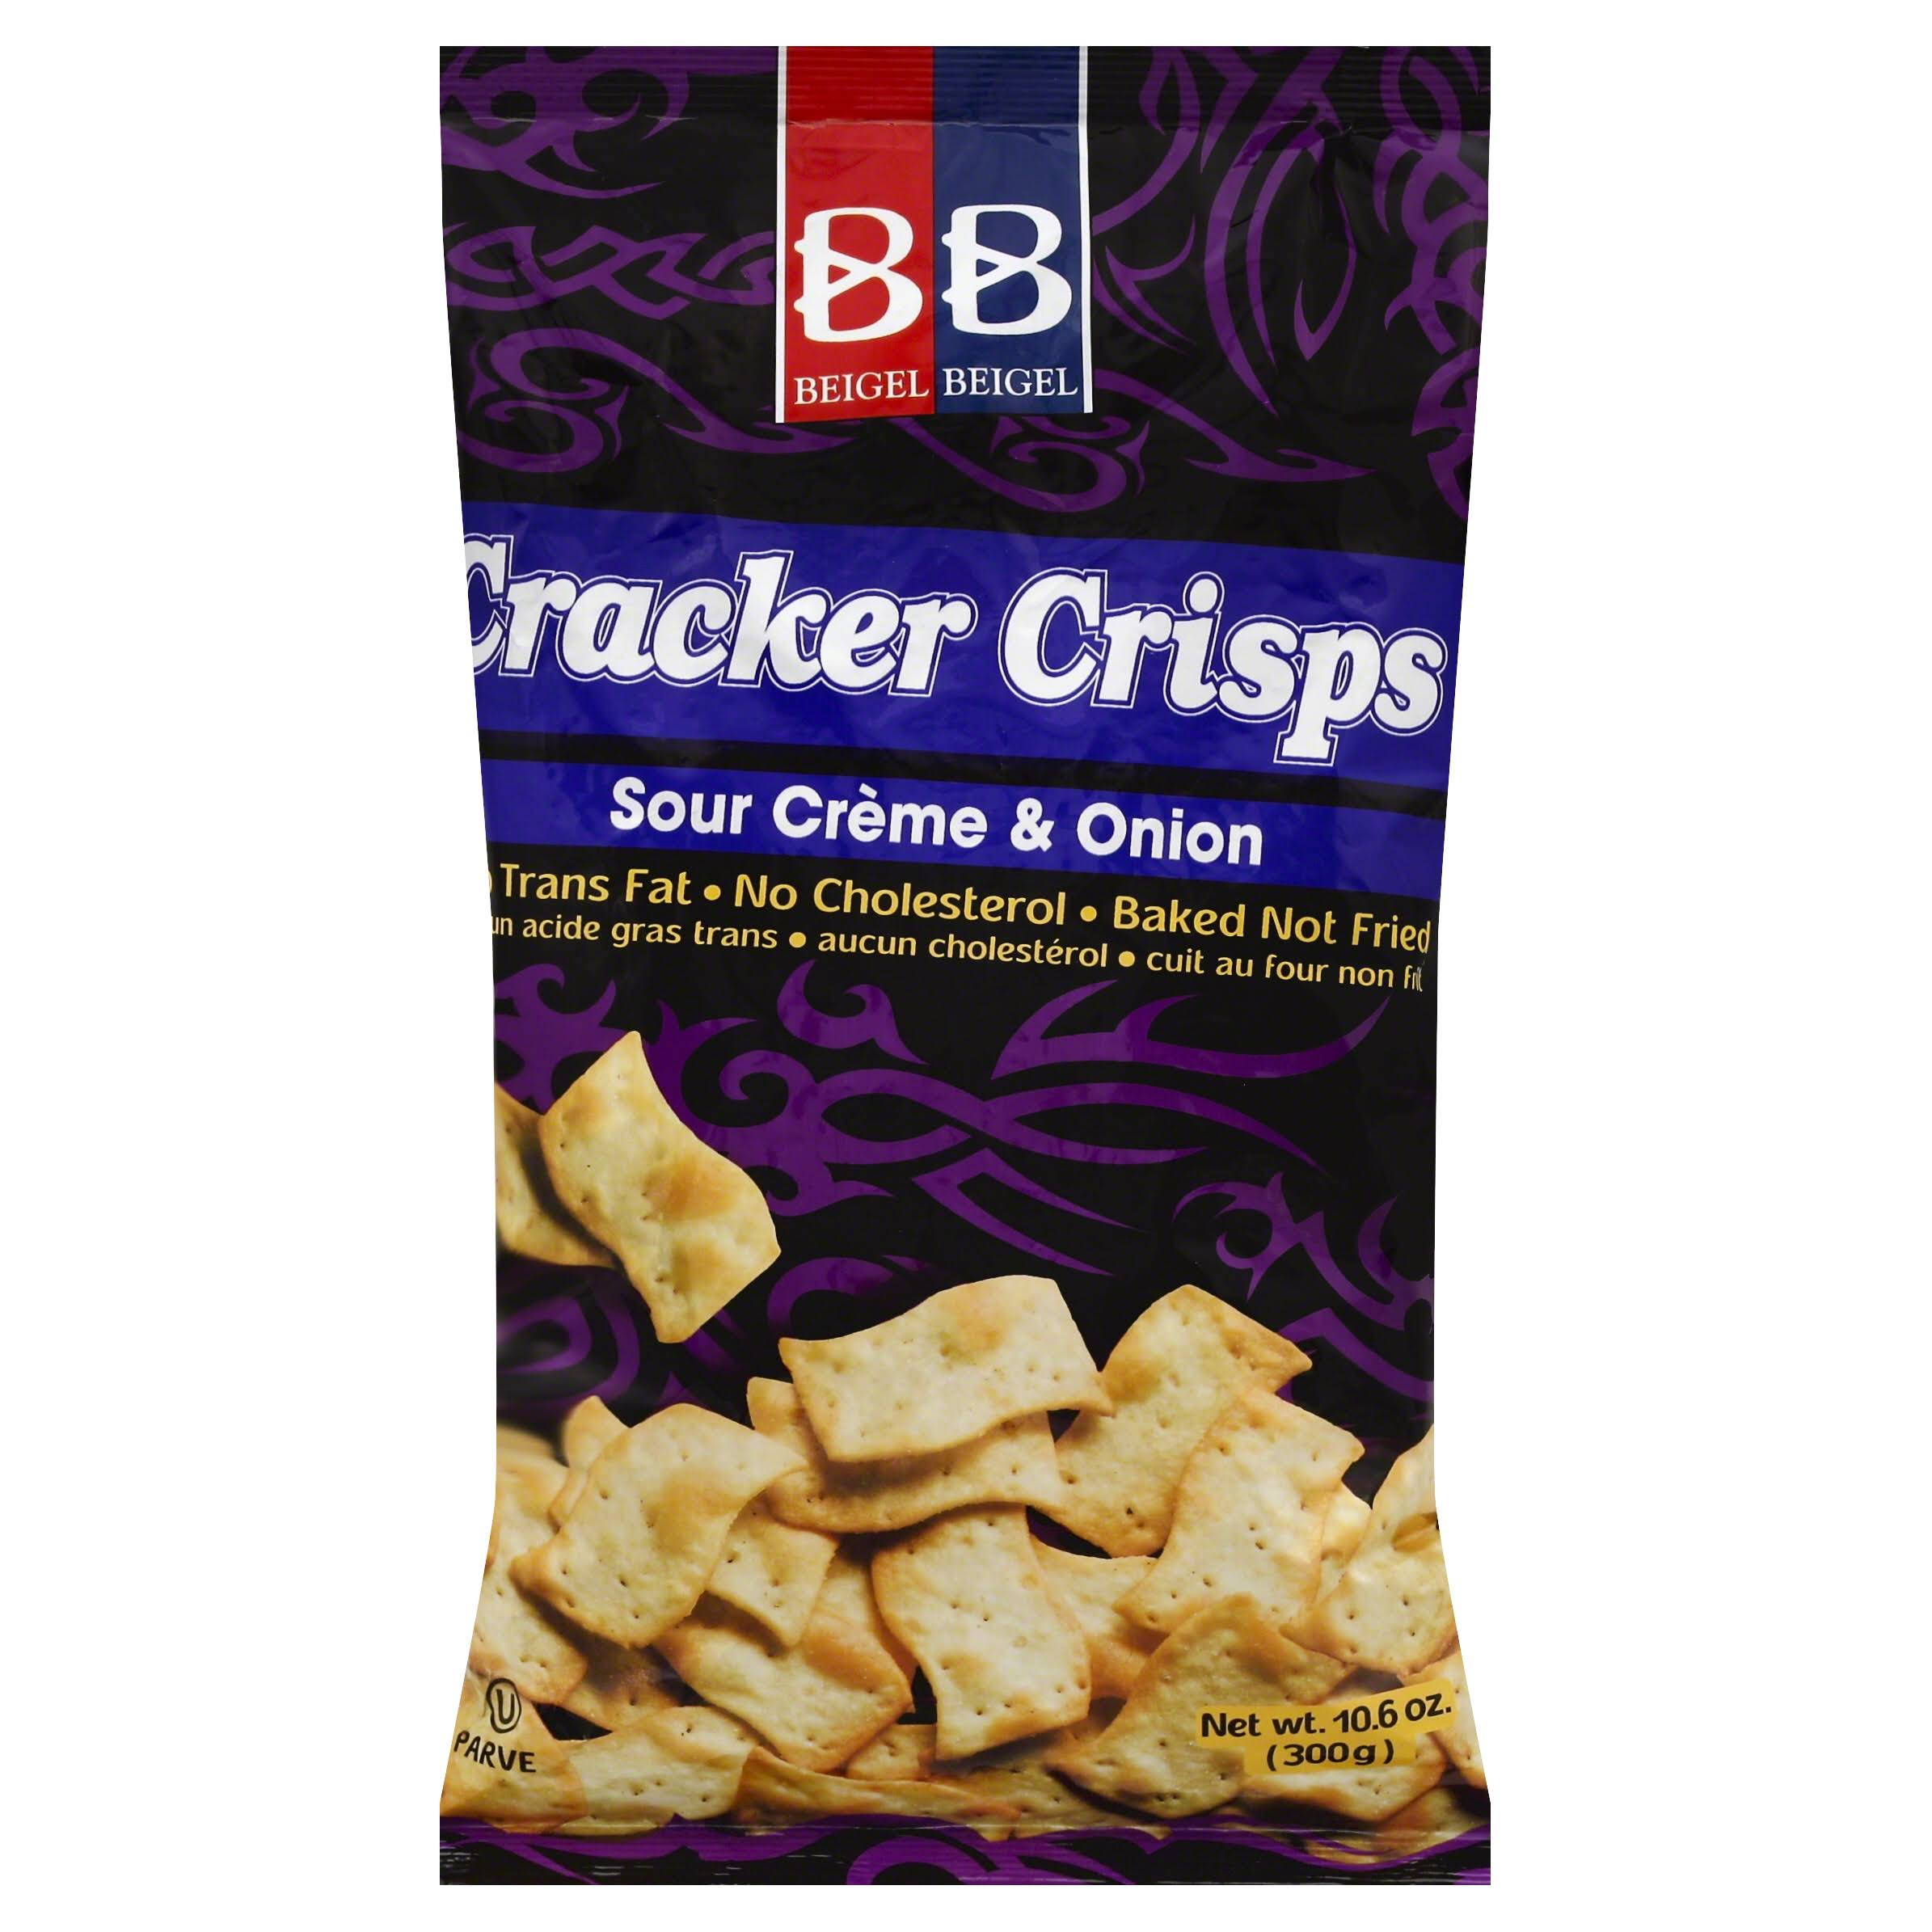 Beigel & Beigel Cracker Crisps - Sour Cream & Onion, 10.6oz